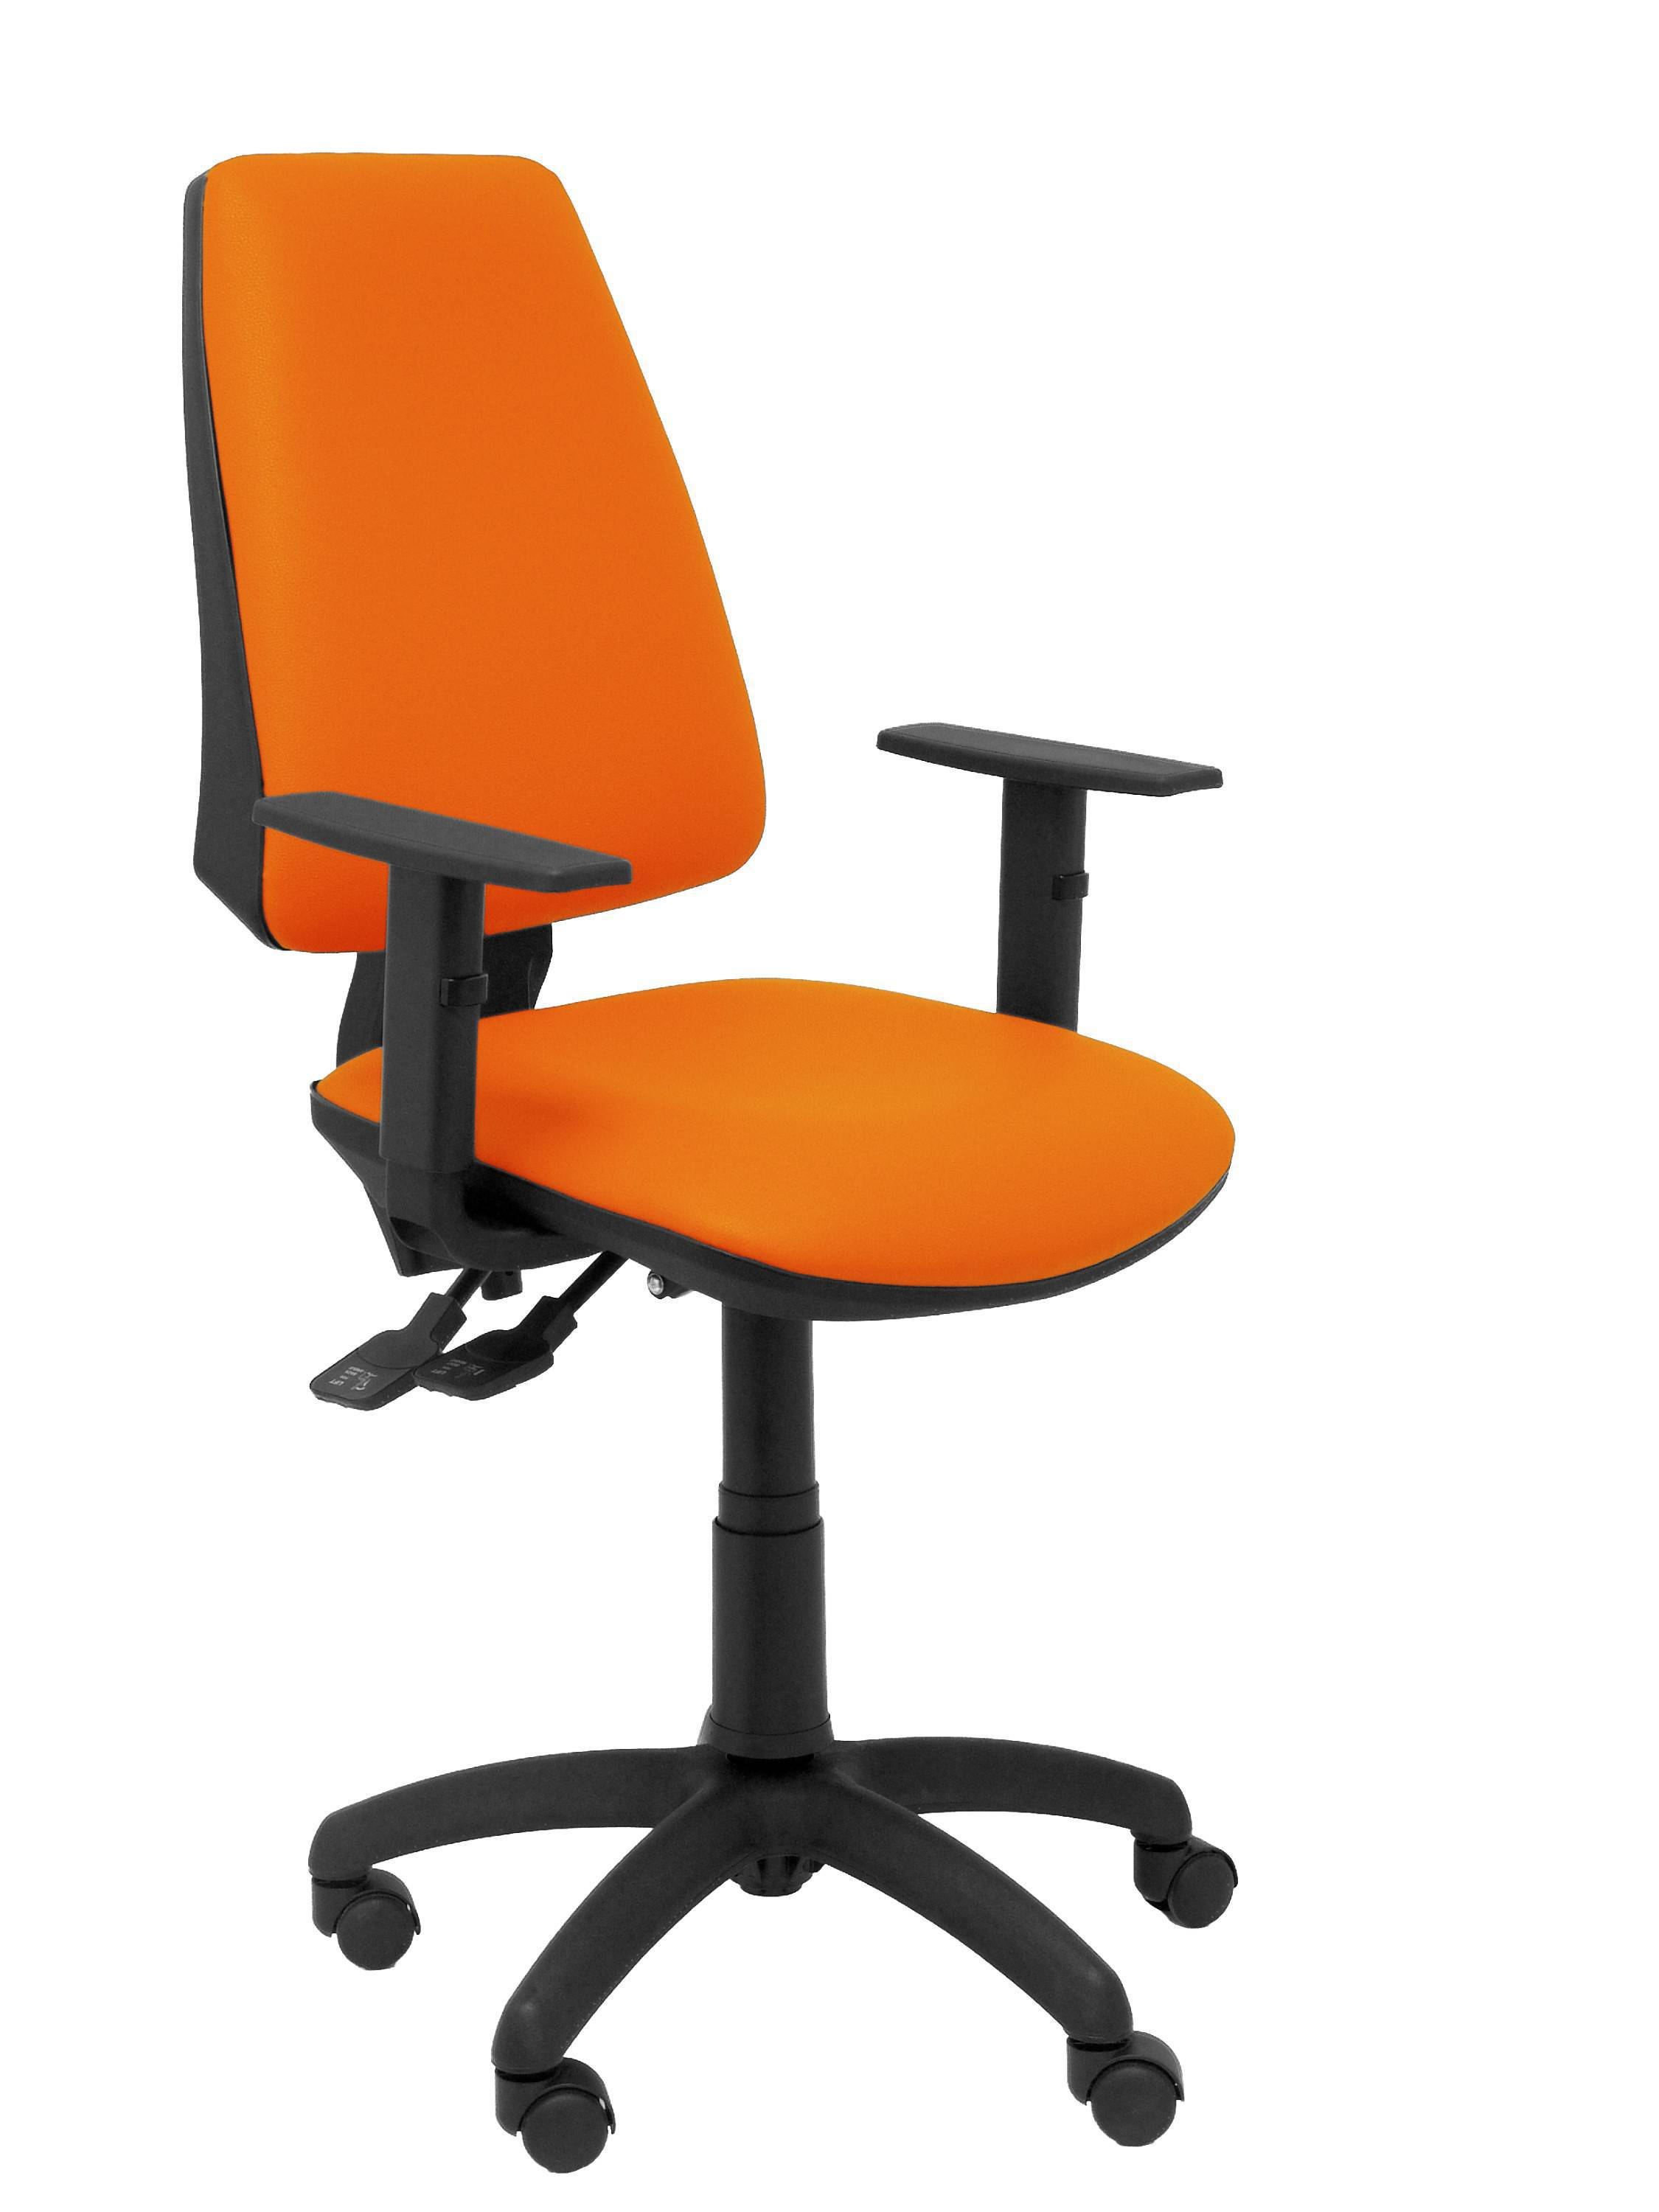 Silla Elche sincro similpiel naranja con brazo regulable